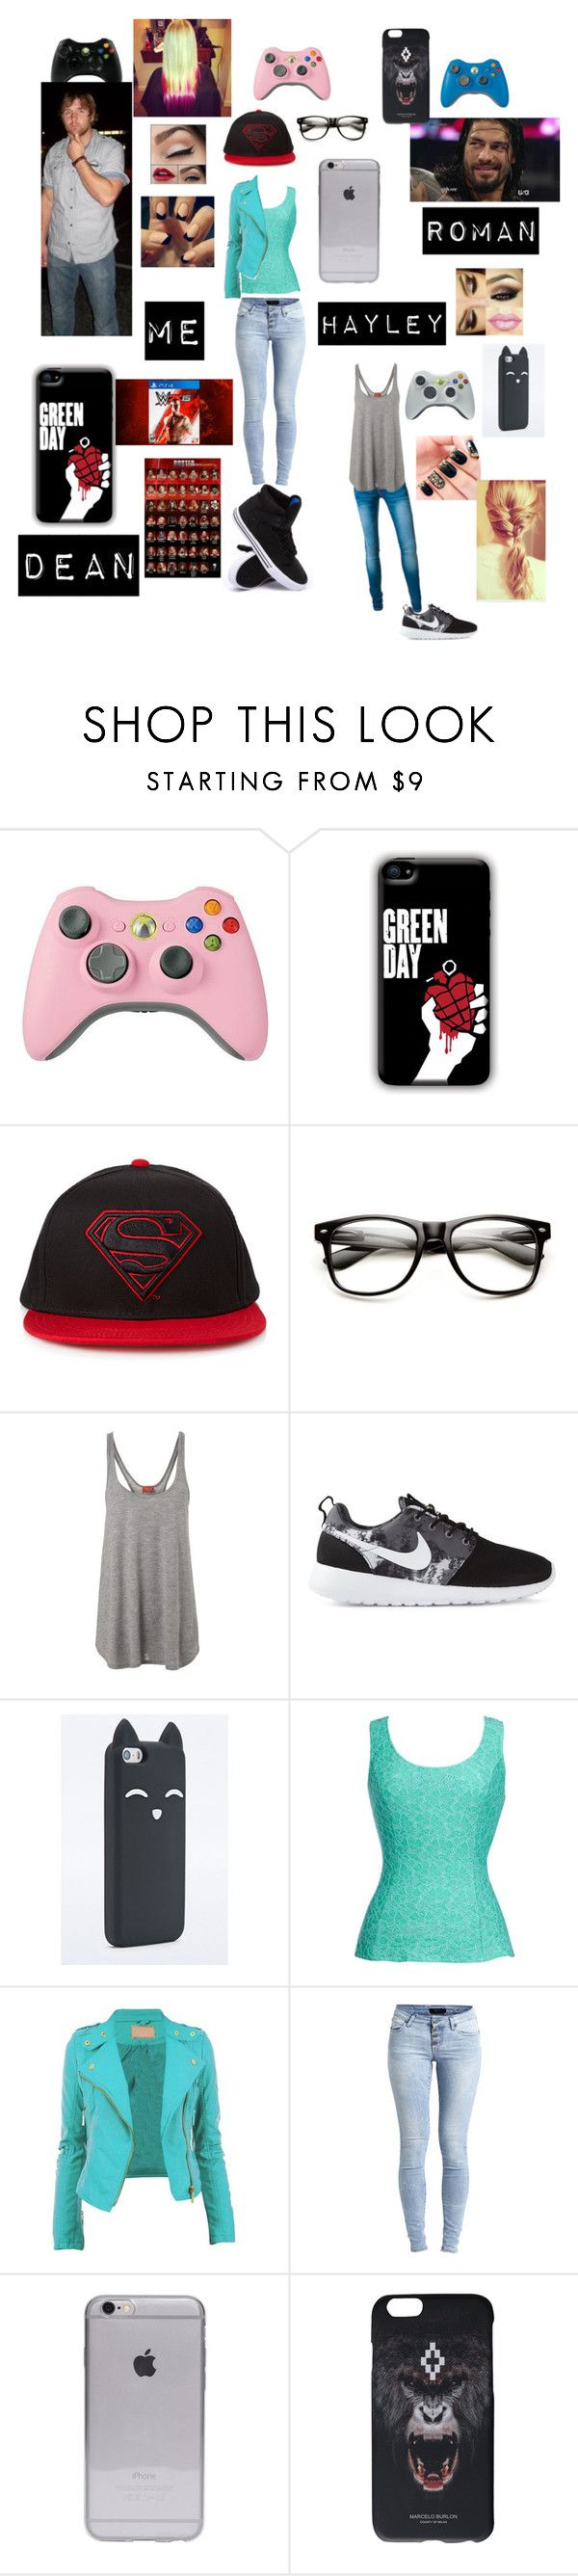 """""""Me, Hayley, Dean and Roman playing WWE 2K14 and WWE 2K15"""" by thefuturemrsambrose ❤ liked on Polyvore featuring 21 Men, Feel The Piece, NIKE, Thalia Sodi, Object Collectors Item, Marcelo Burlon, Supra and Hogan"""